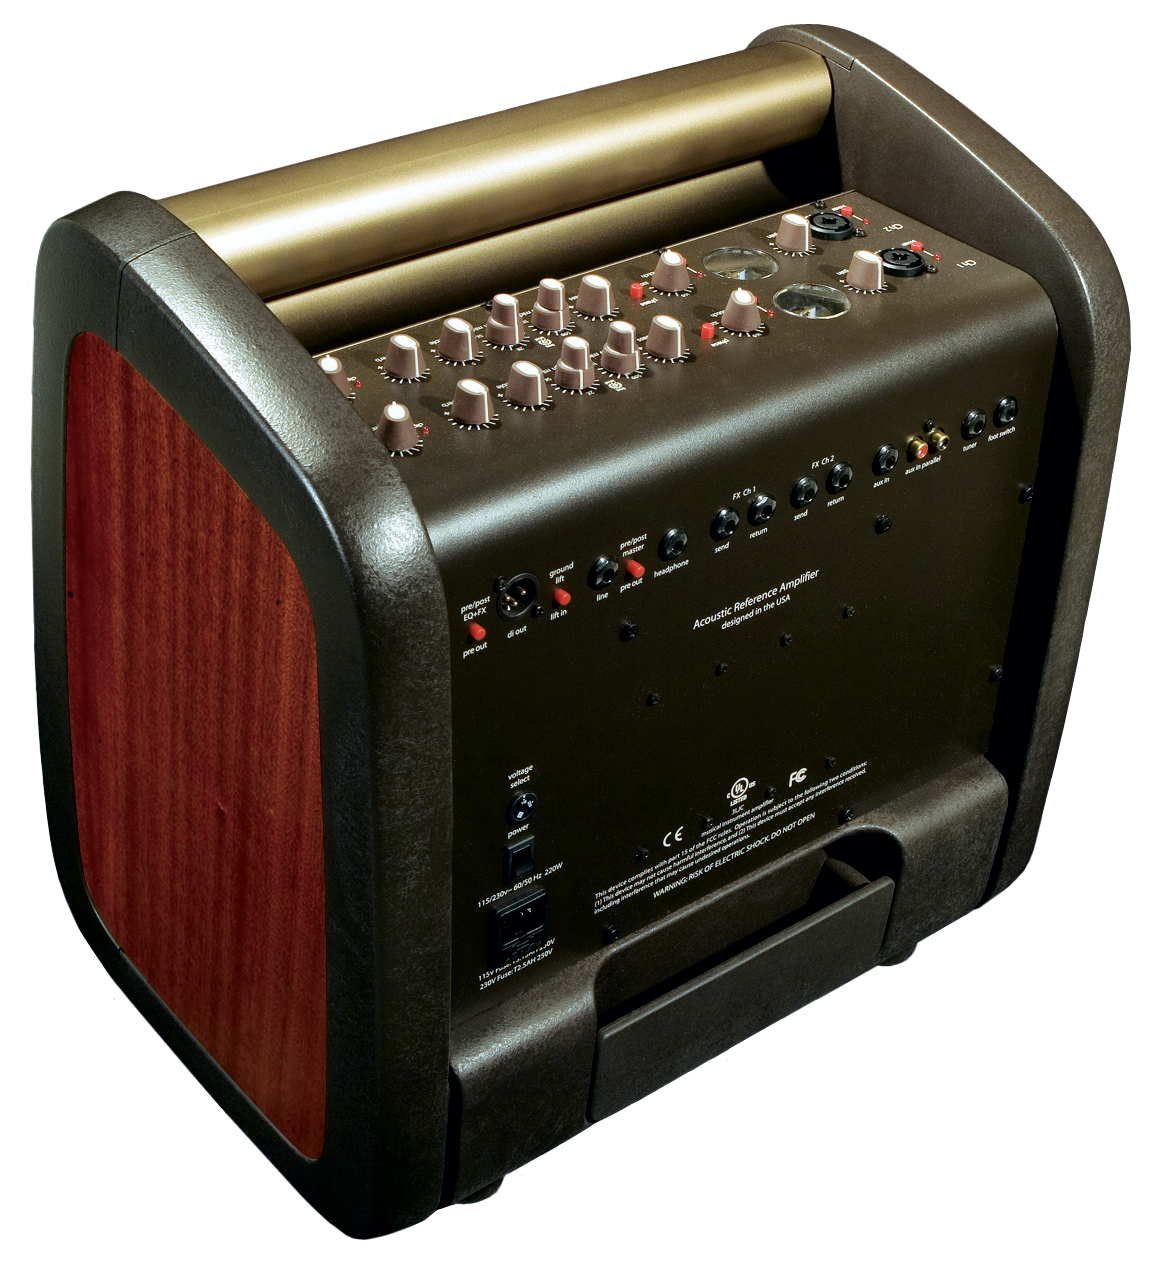 LR Baggs Acoustic Reference Amplifier